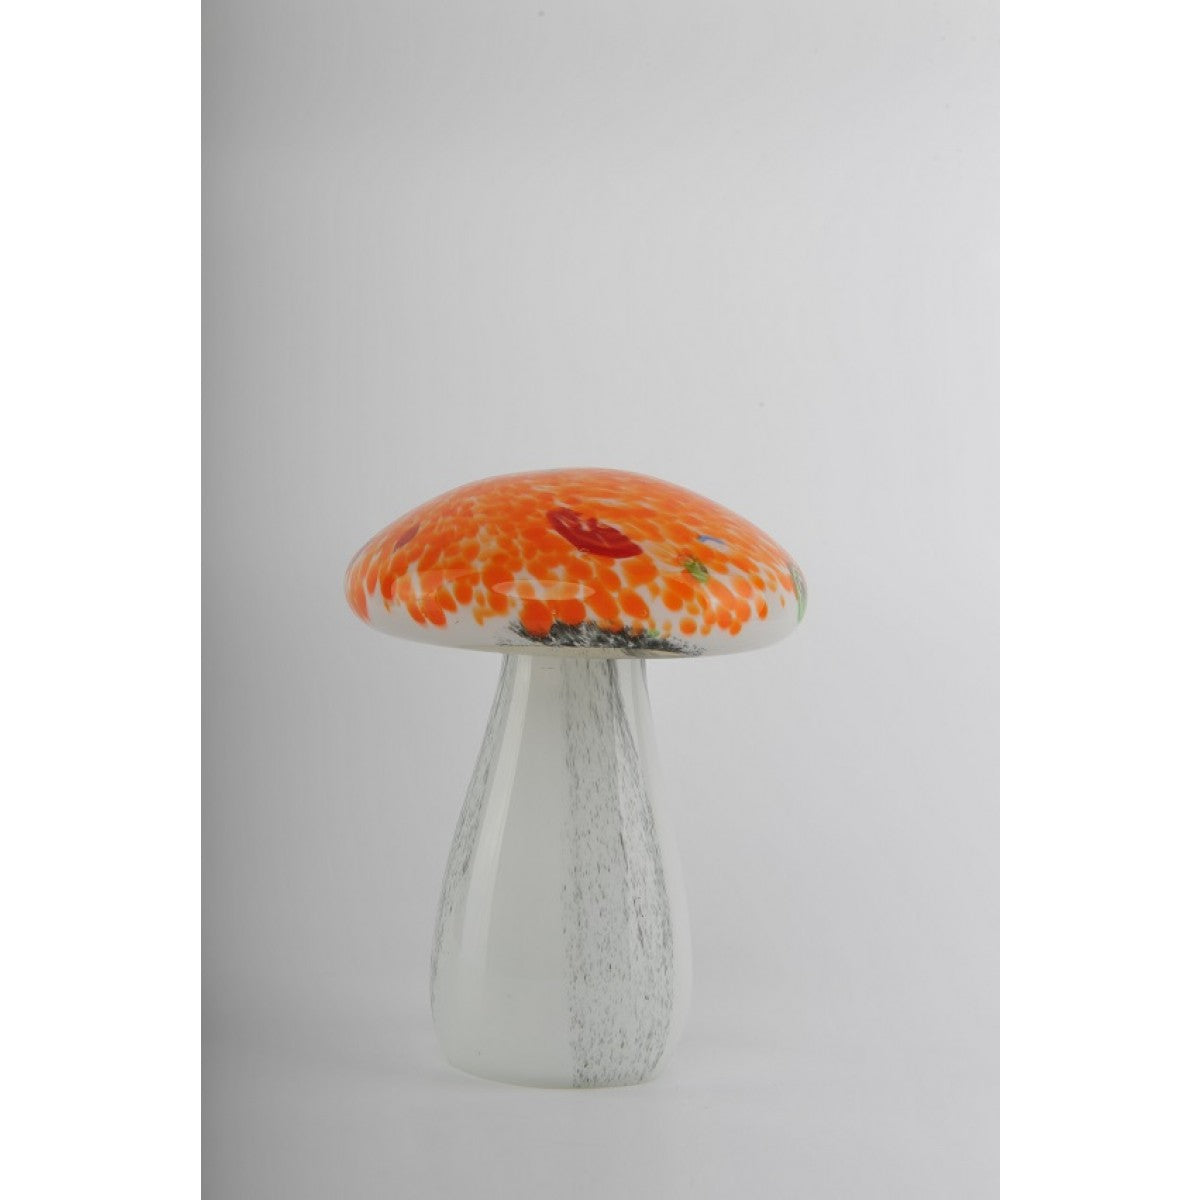 Glass Decoration of Orange Mushroom